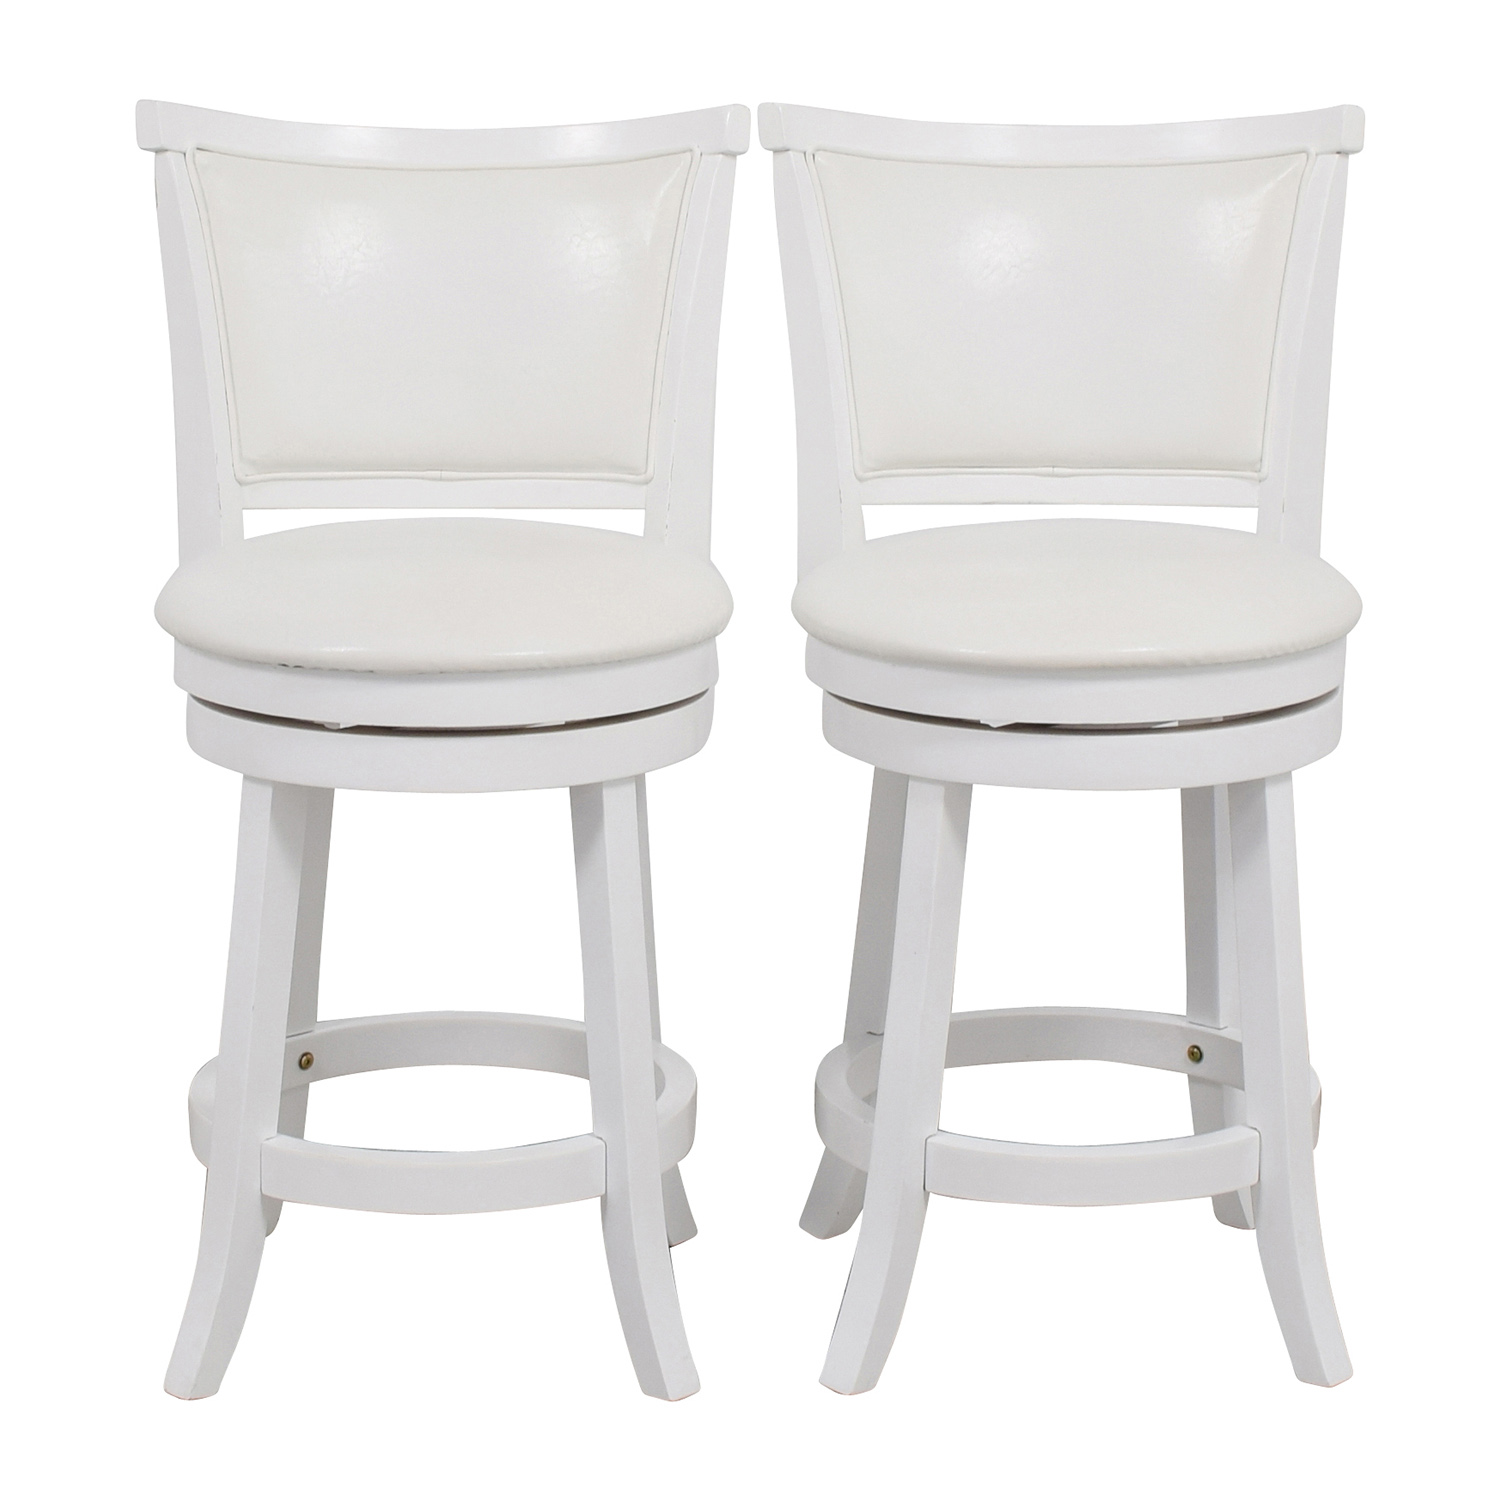 CorLiving White Leatherette Swivel Counter Height Bar Stool / Chairs